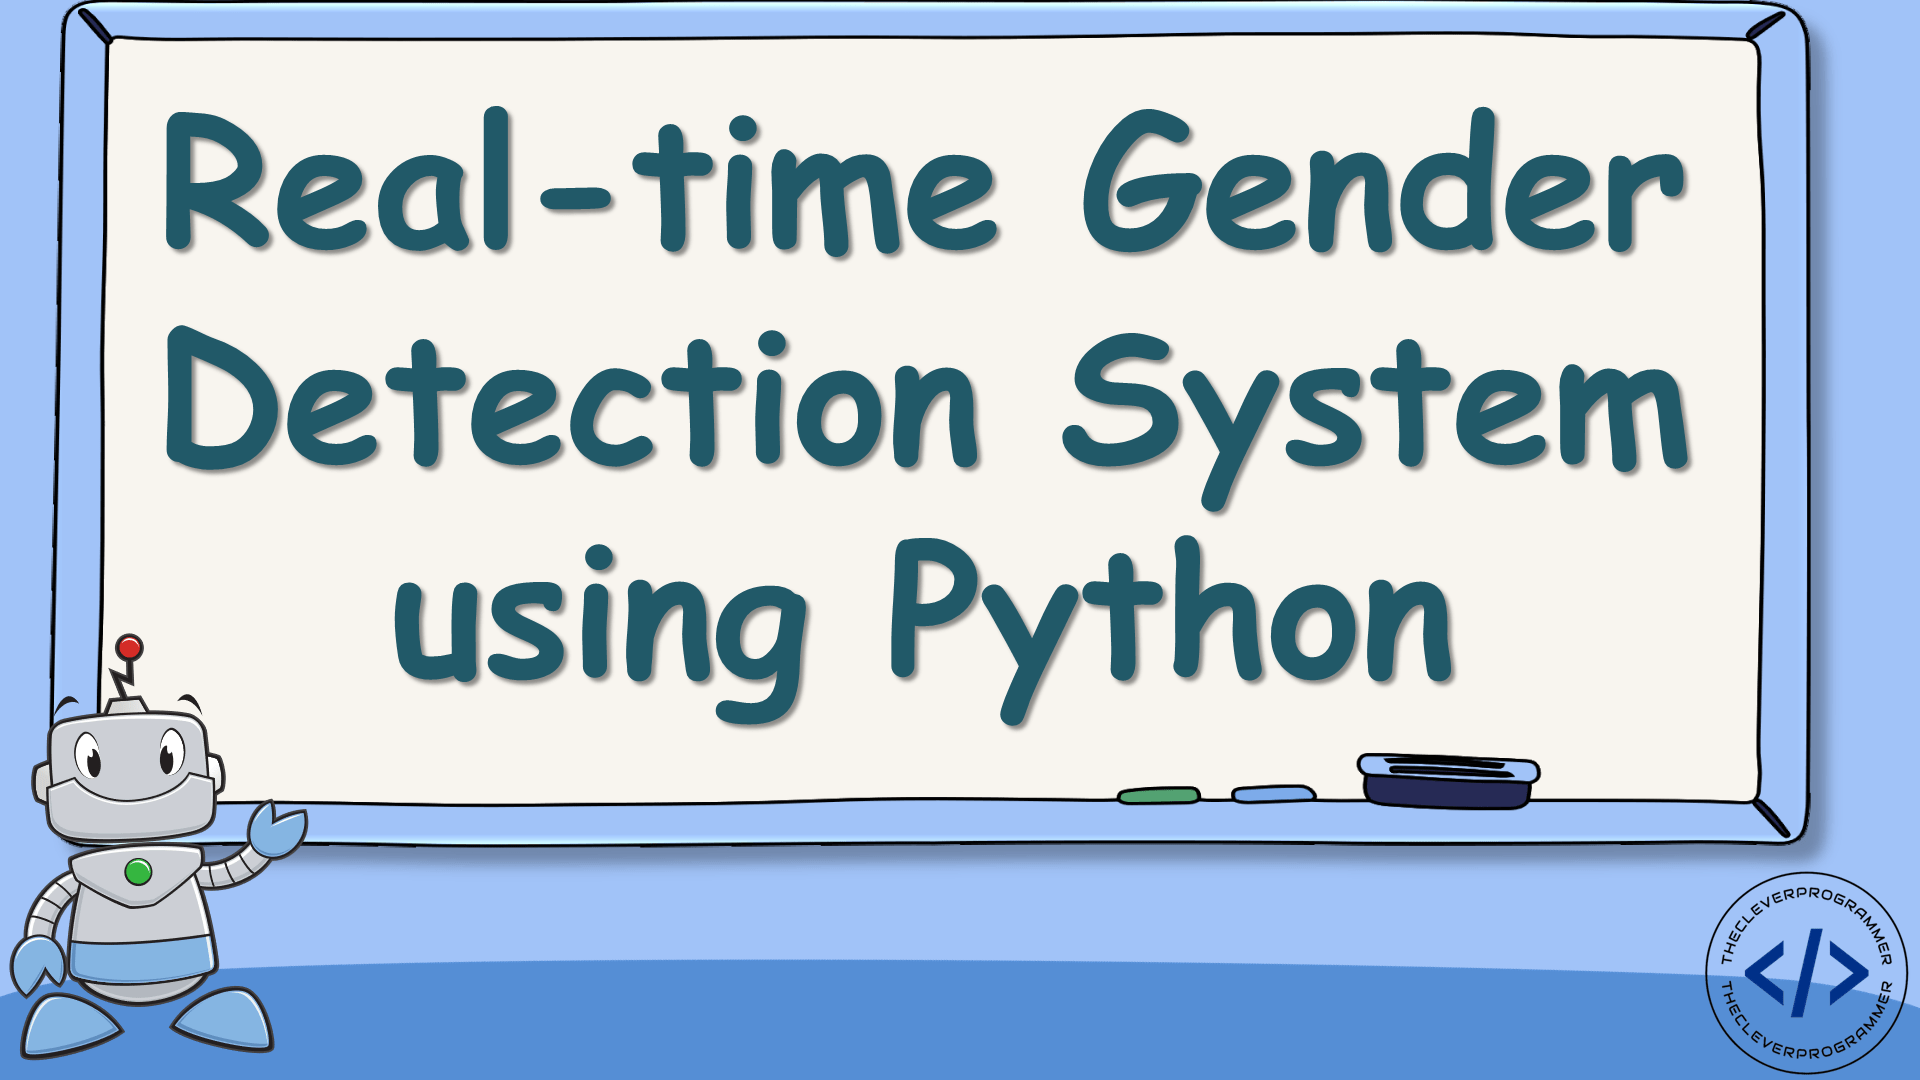 Real-time Gender Detection using Python